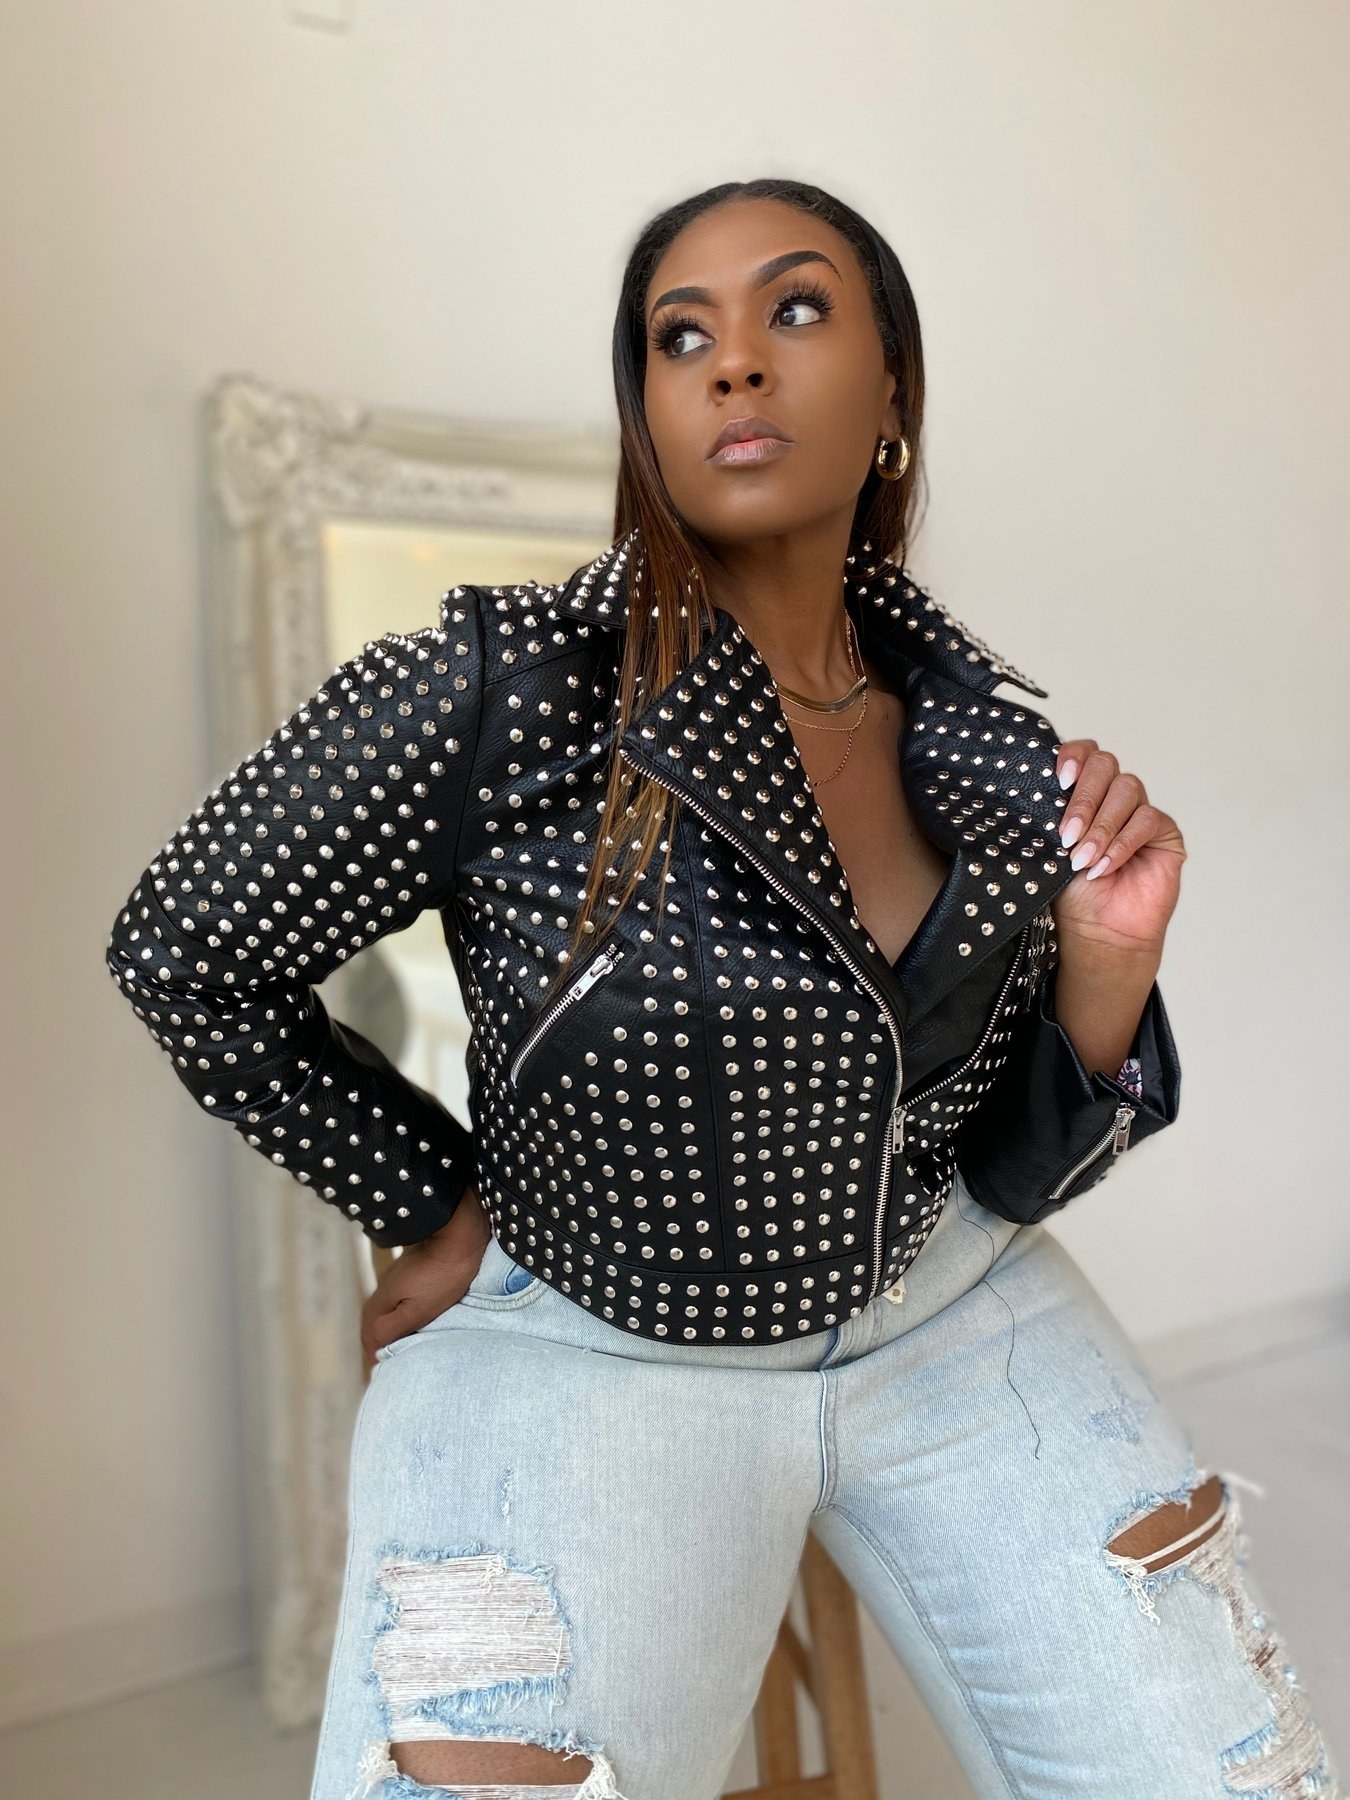 Model wearing the cropped faux leather jacket with silver studs over the whole thing with diagonal pockets on the side and a zip-front.